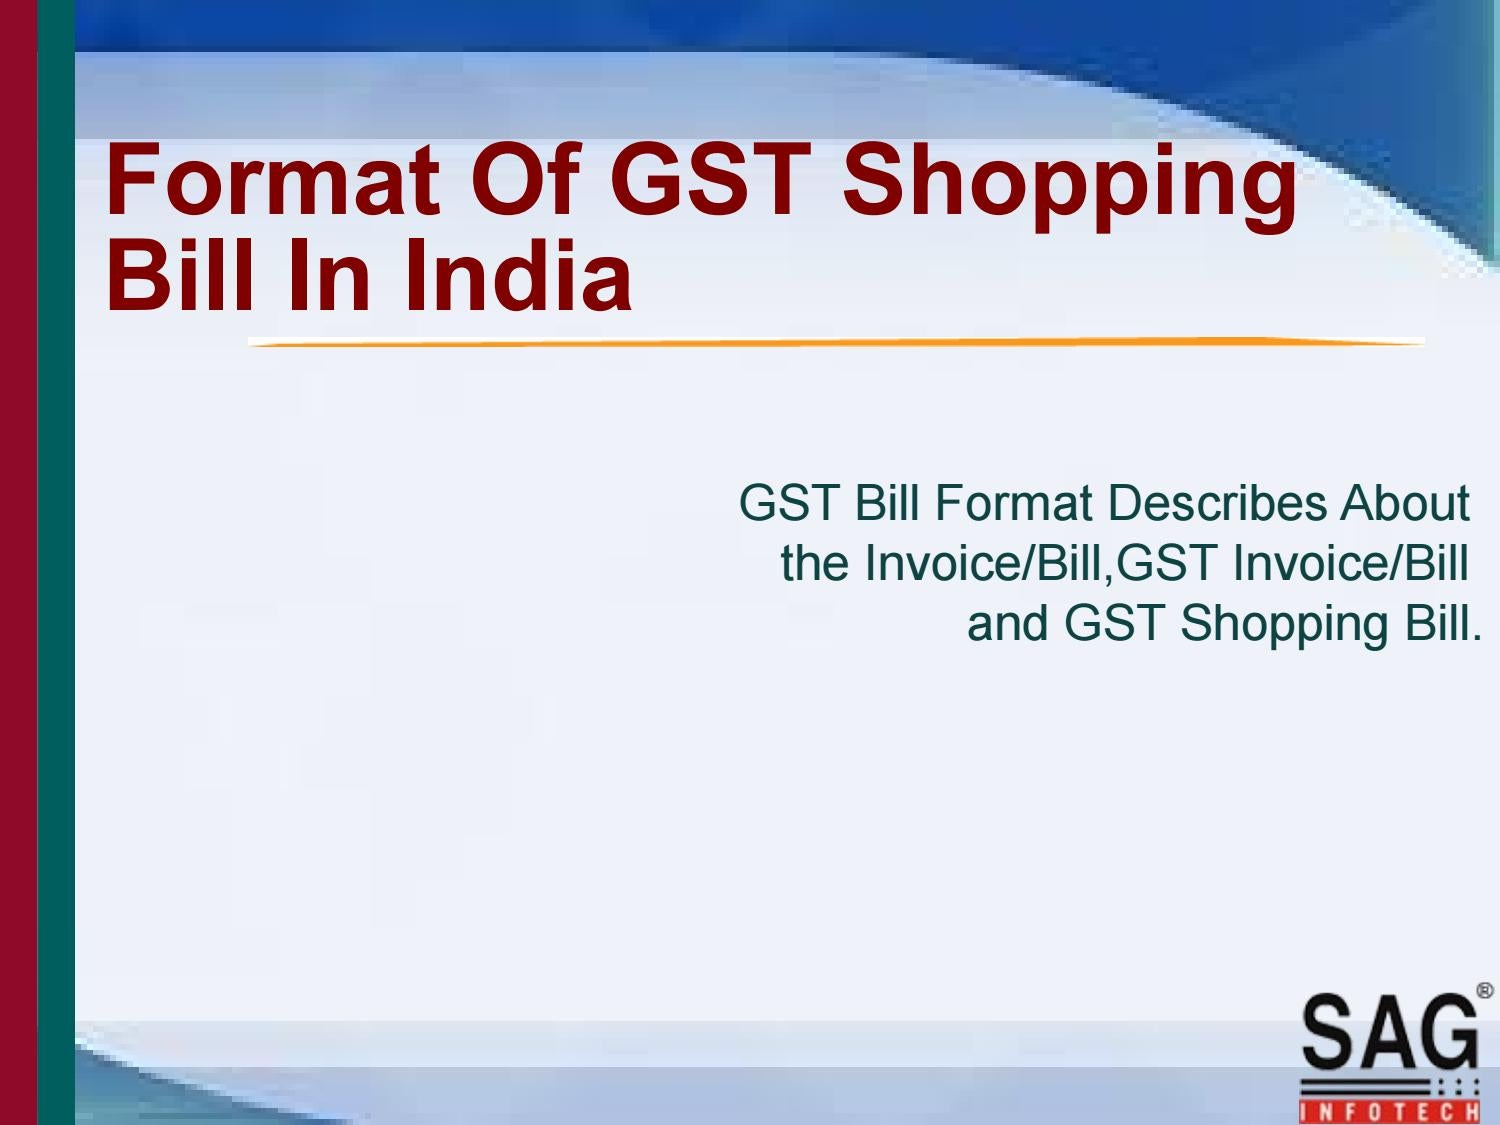 Commercial Invoice For International Shipping Download Gst Bill Format  Rabitahnet Printed Invoice Pdf with Receipt For Buying A Car Excel Gst Bill Format In India By Gst Mobile App  Issuu Invoice Templates How To Fill Out A Receipt Book For Rent Word